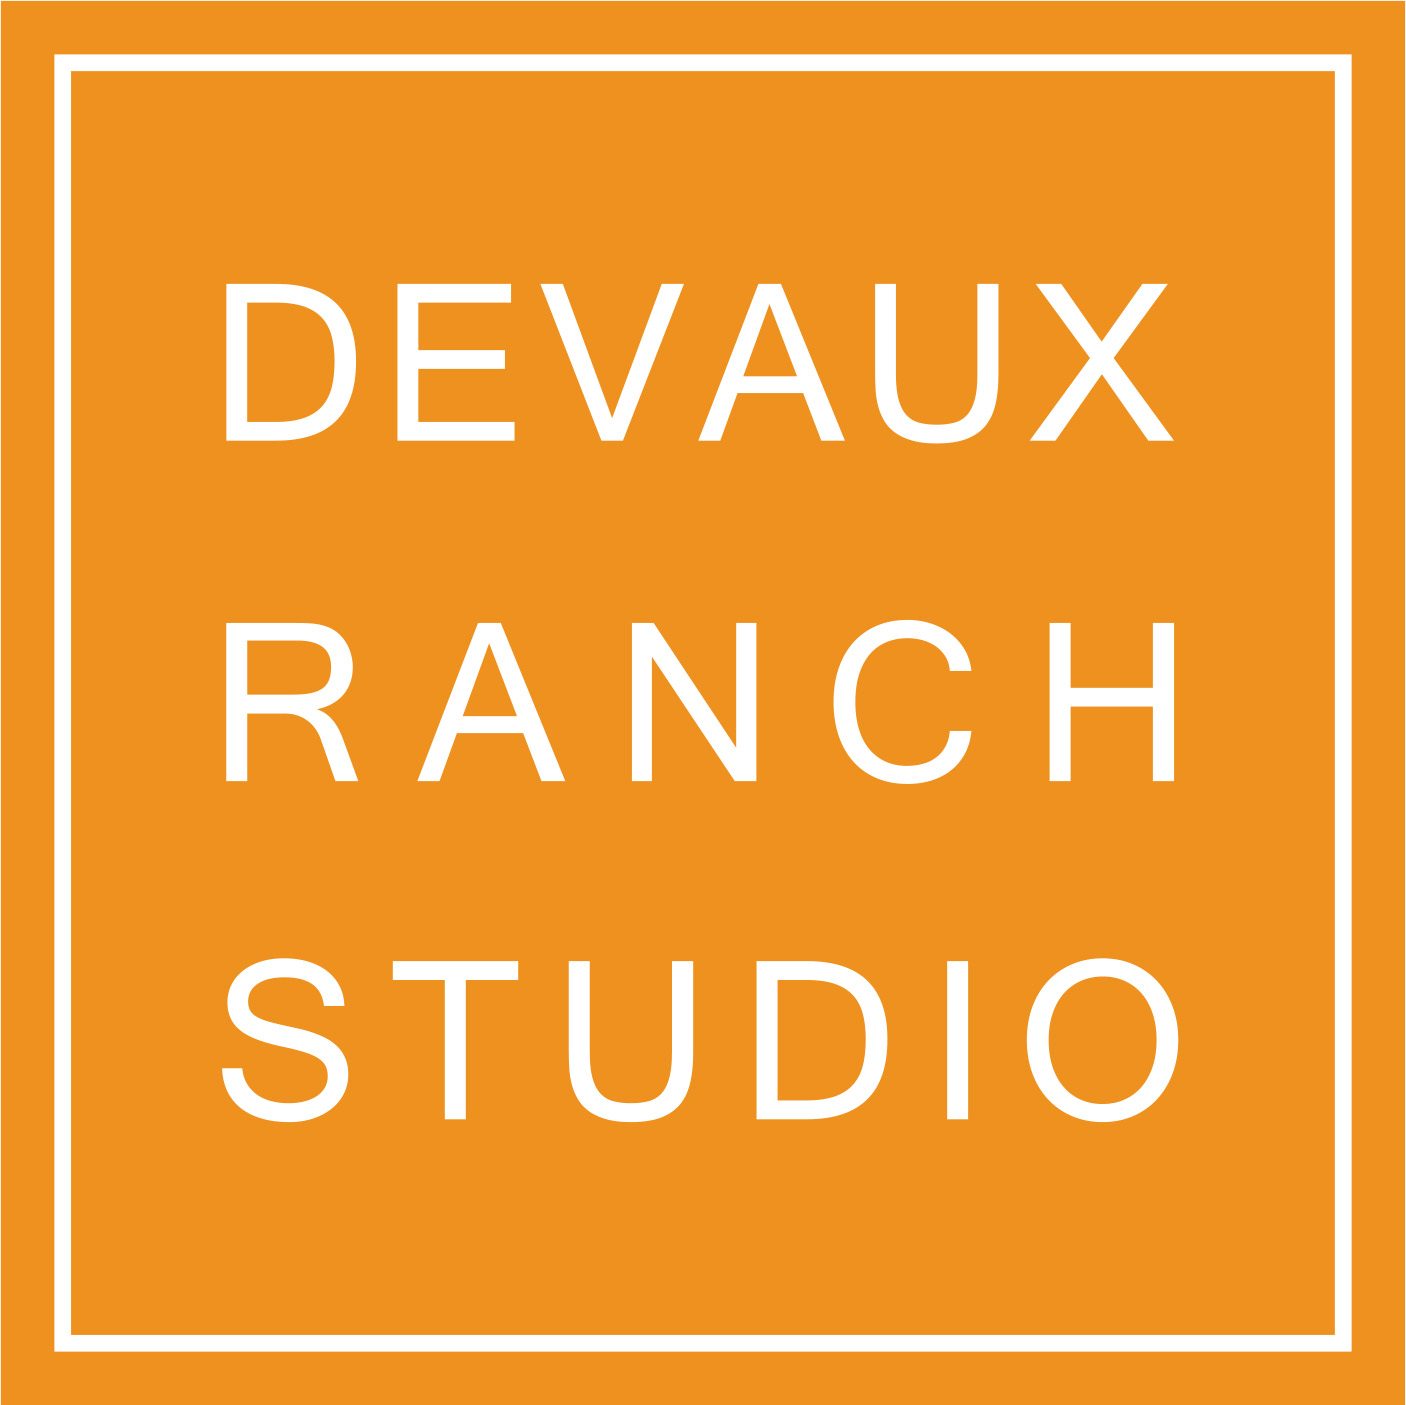 - Established in 2015, in the Carneros region of Napa Valley, Devaux Ranch Studio was my first dedicated creative space, which was unfortunately destroyed in the Tubbs fire of 2017. Below is a video about my work and process, and some of the paintings created during that time and in that place.